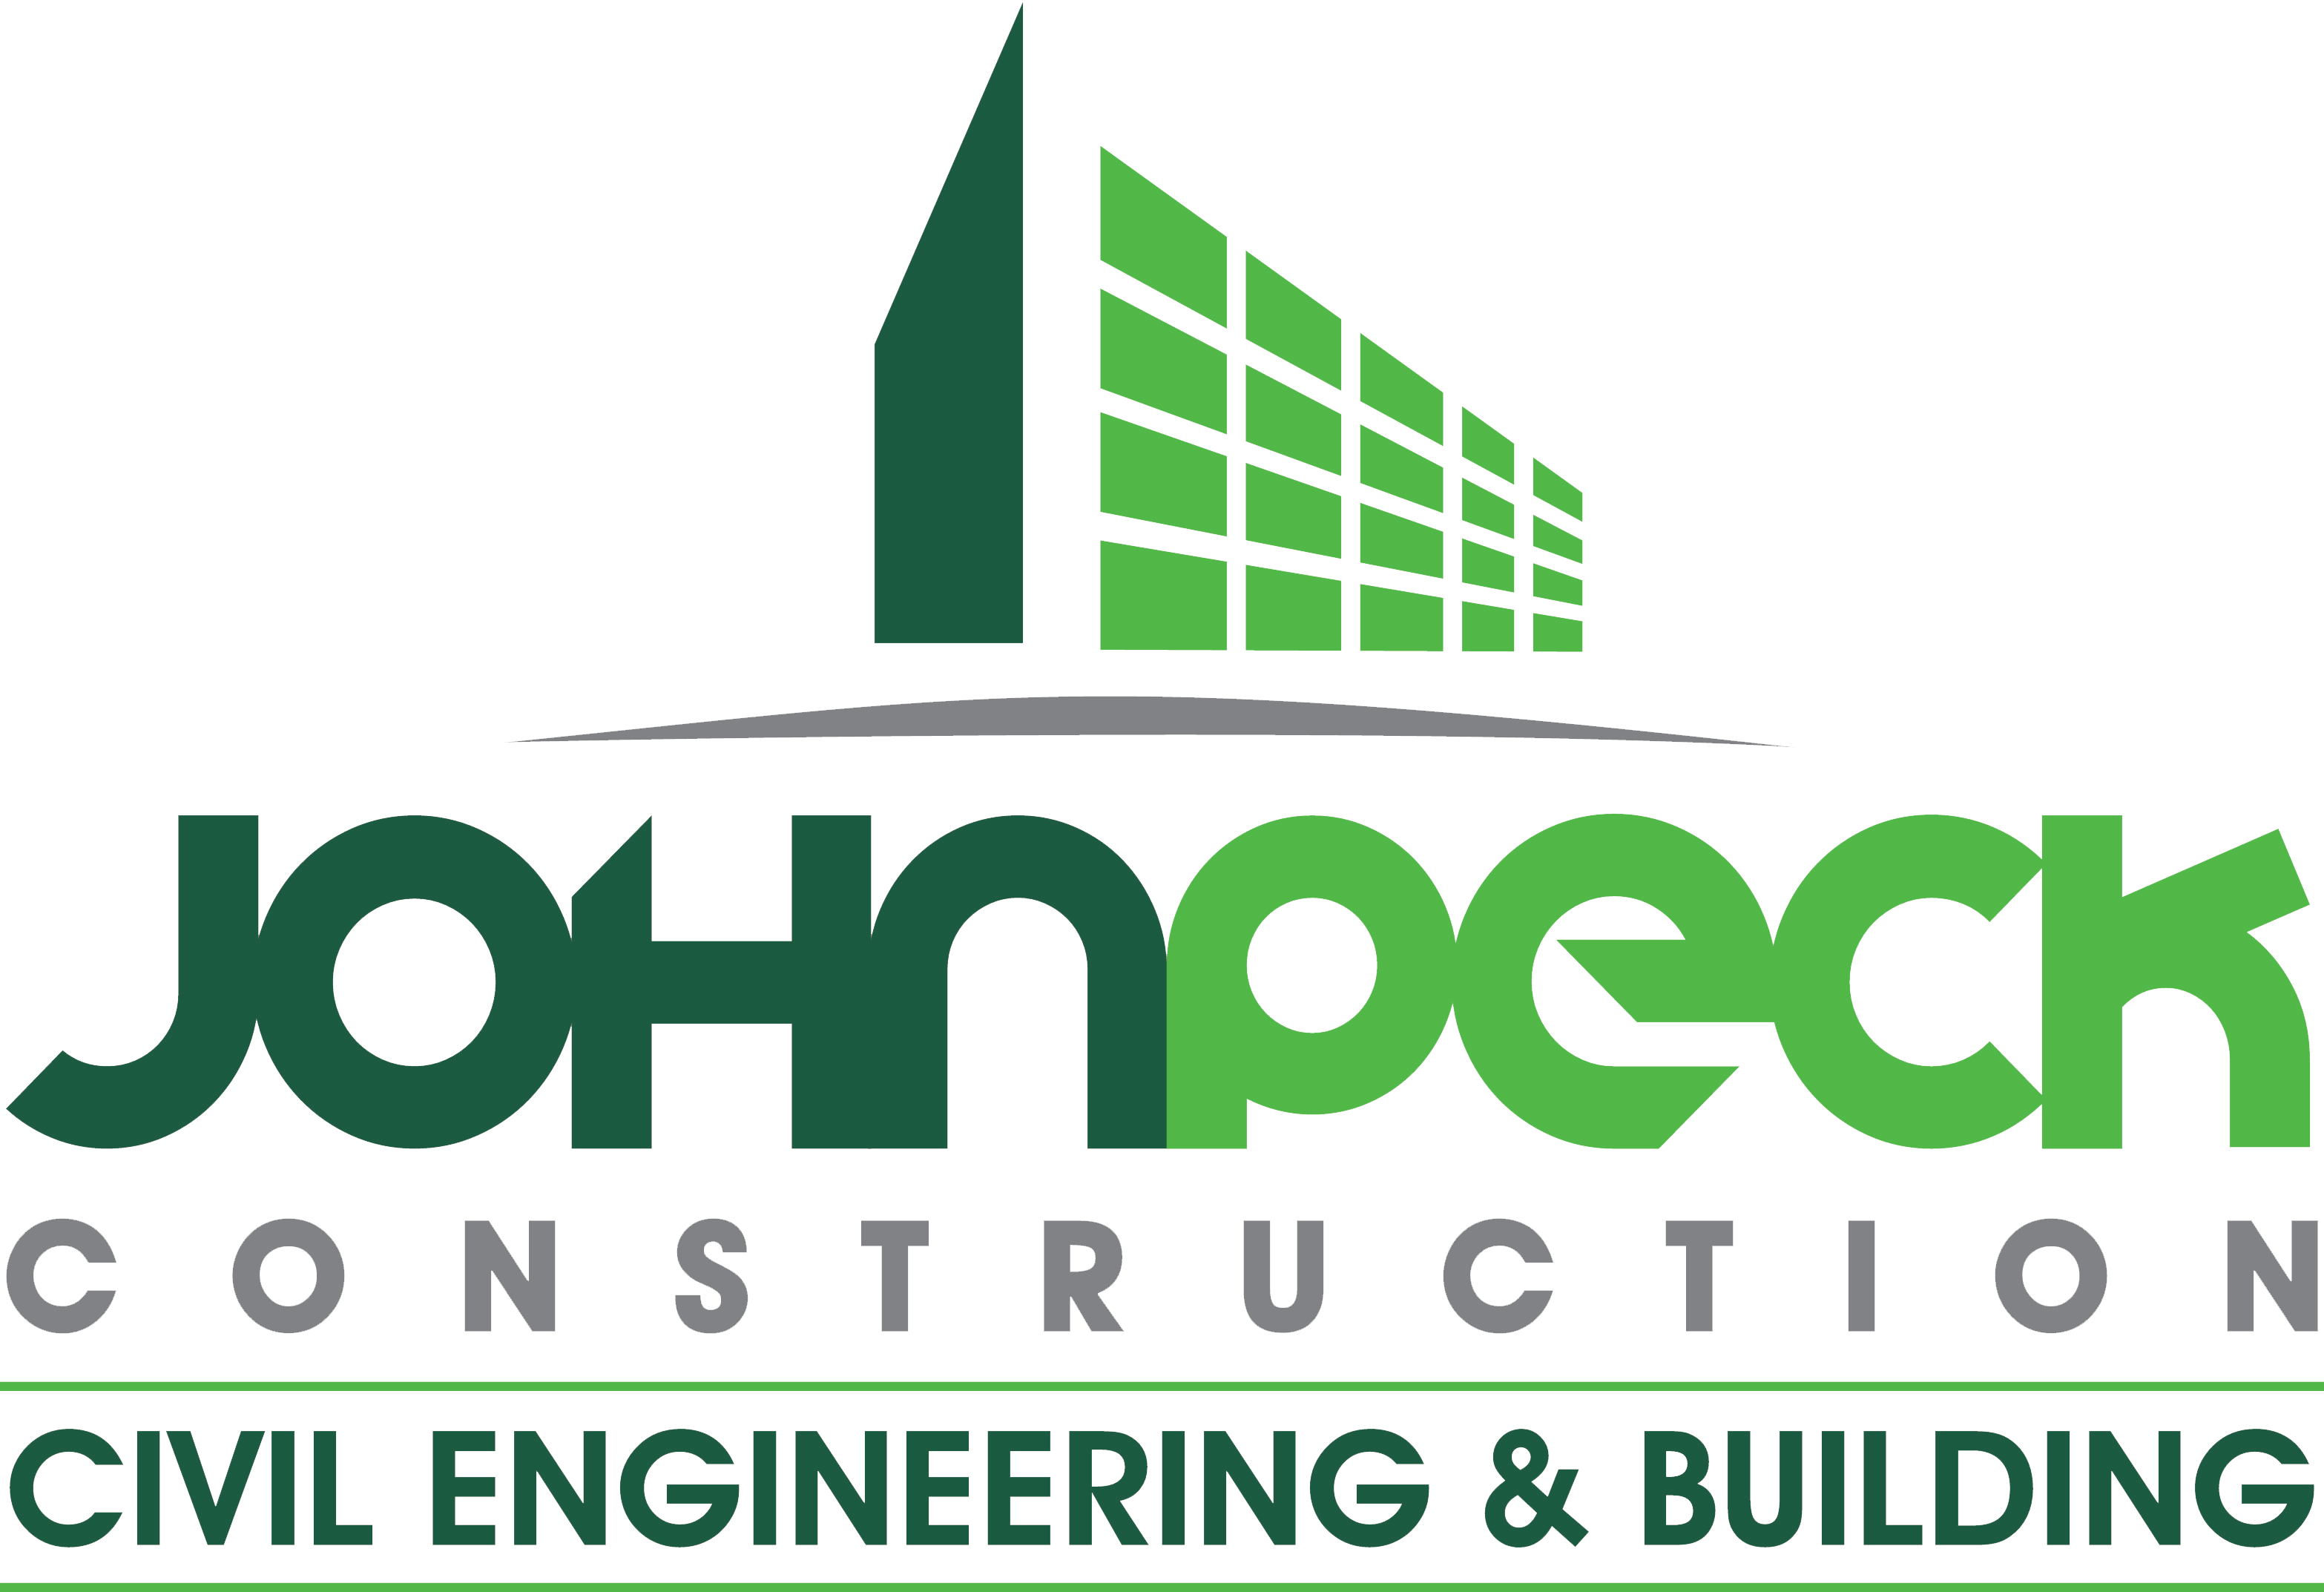 John Peck Construction